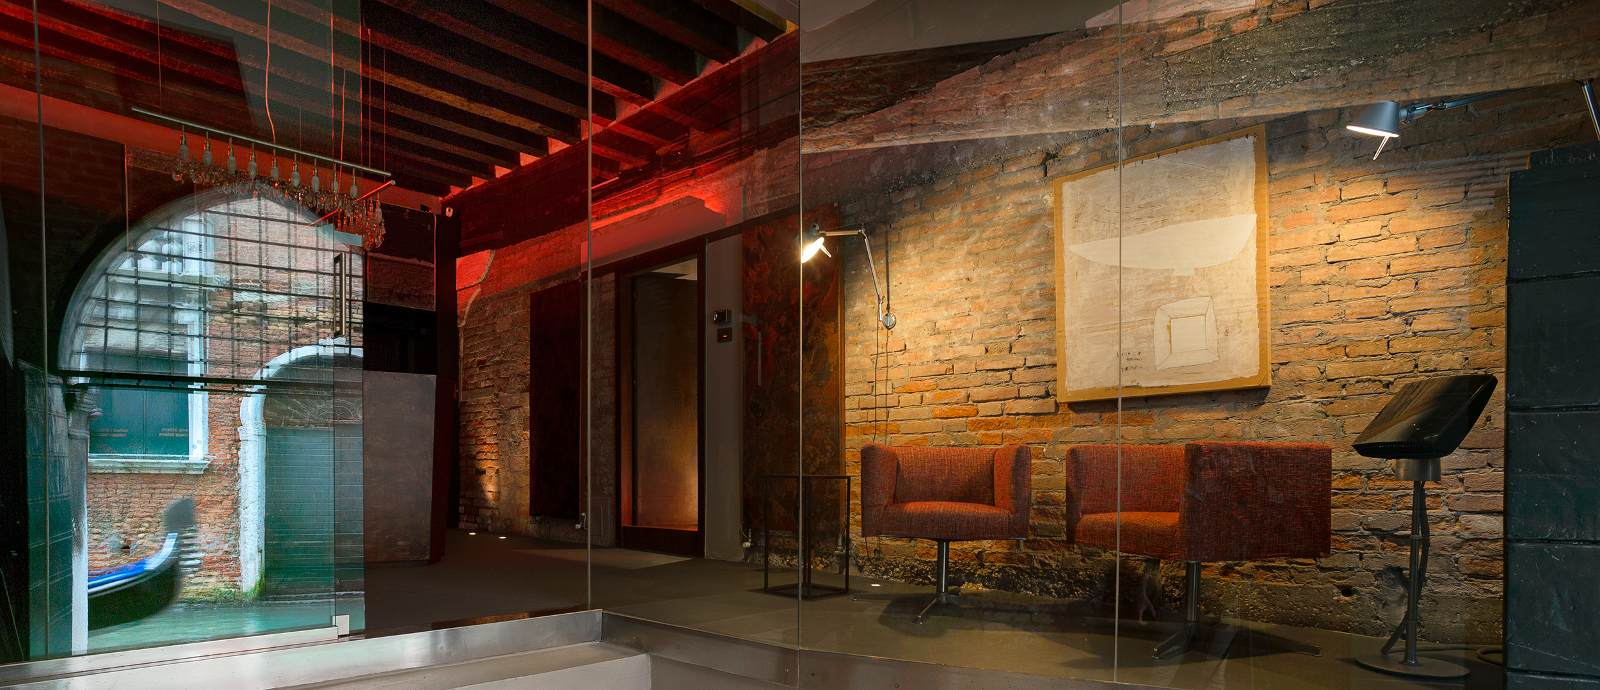 Design hotel venice the charming house official site for Design hotel venice